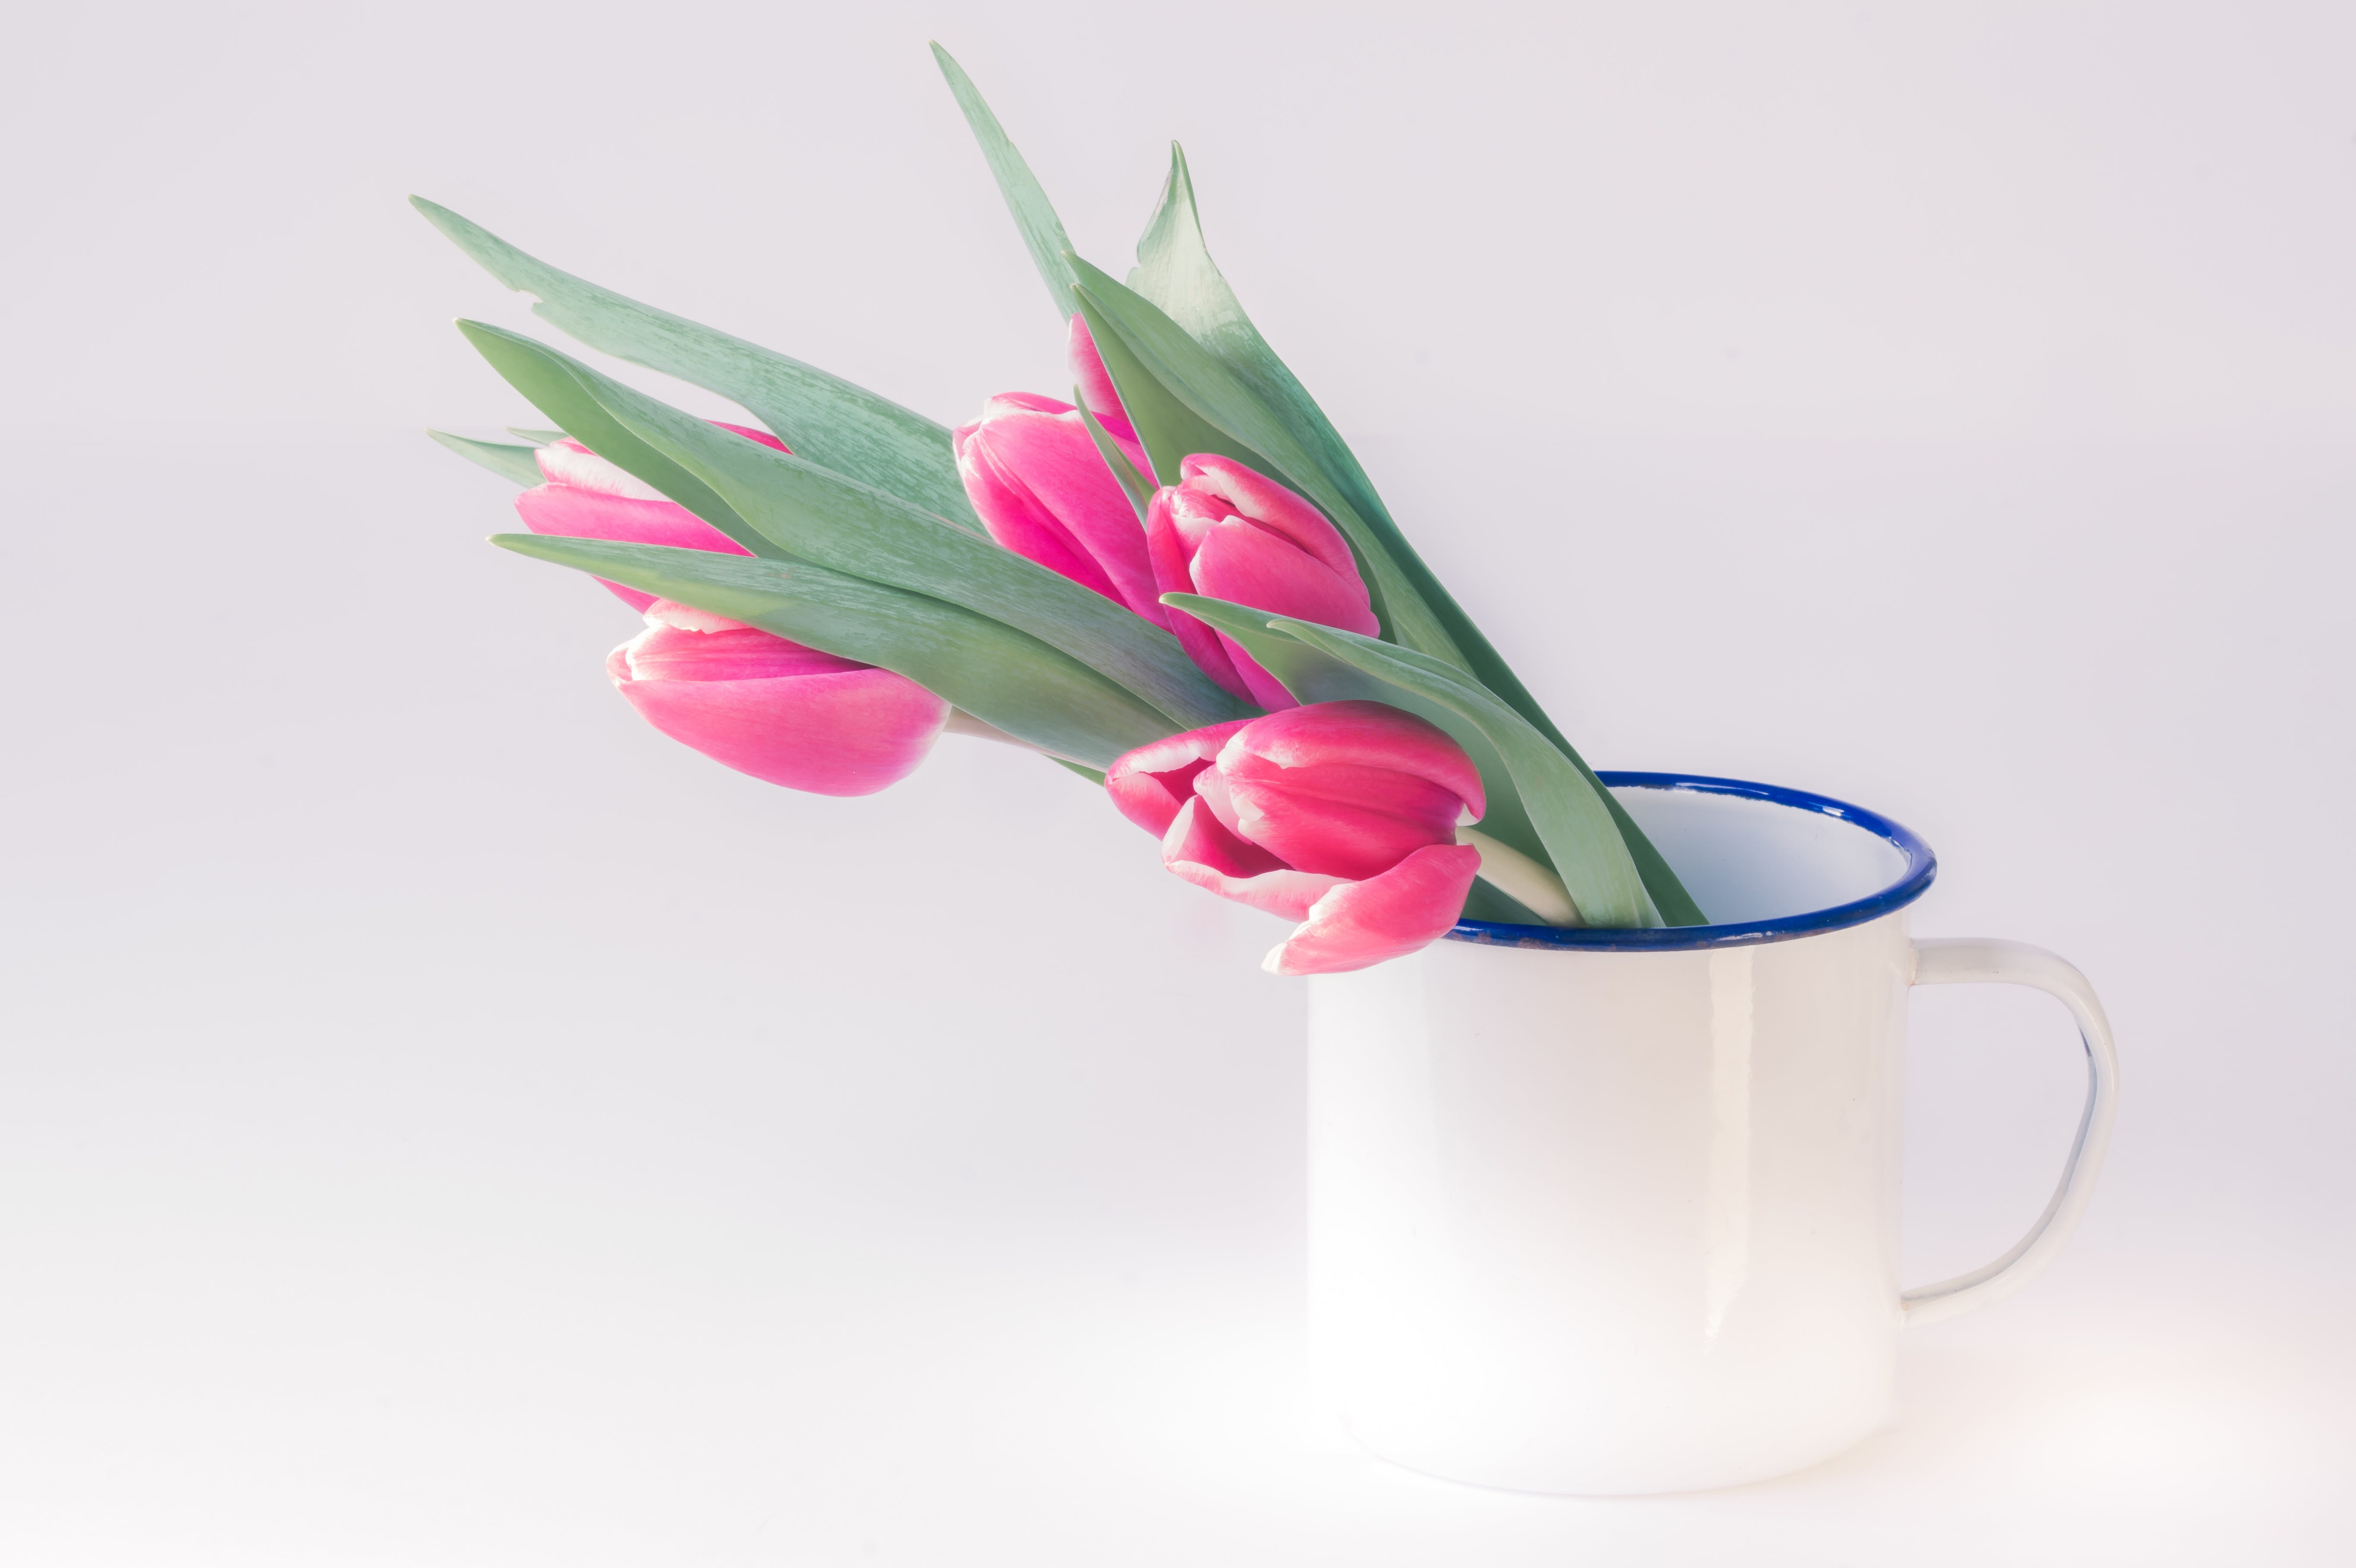 Pink Tulip Flowers in White Cup